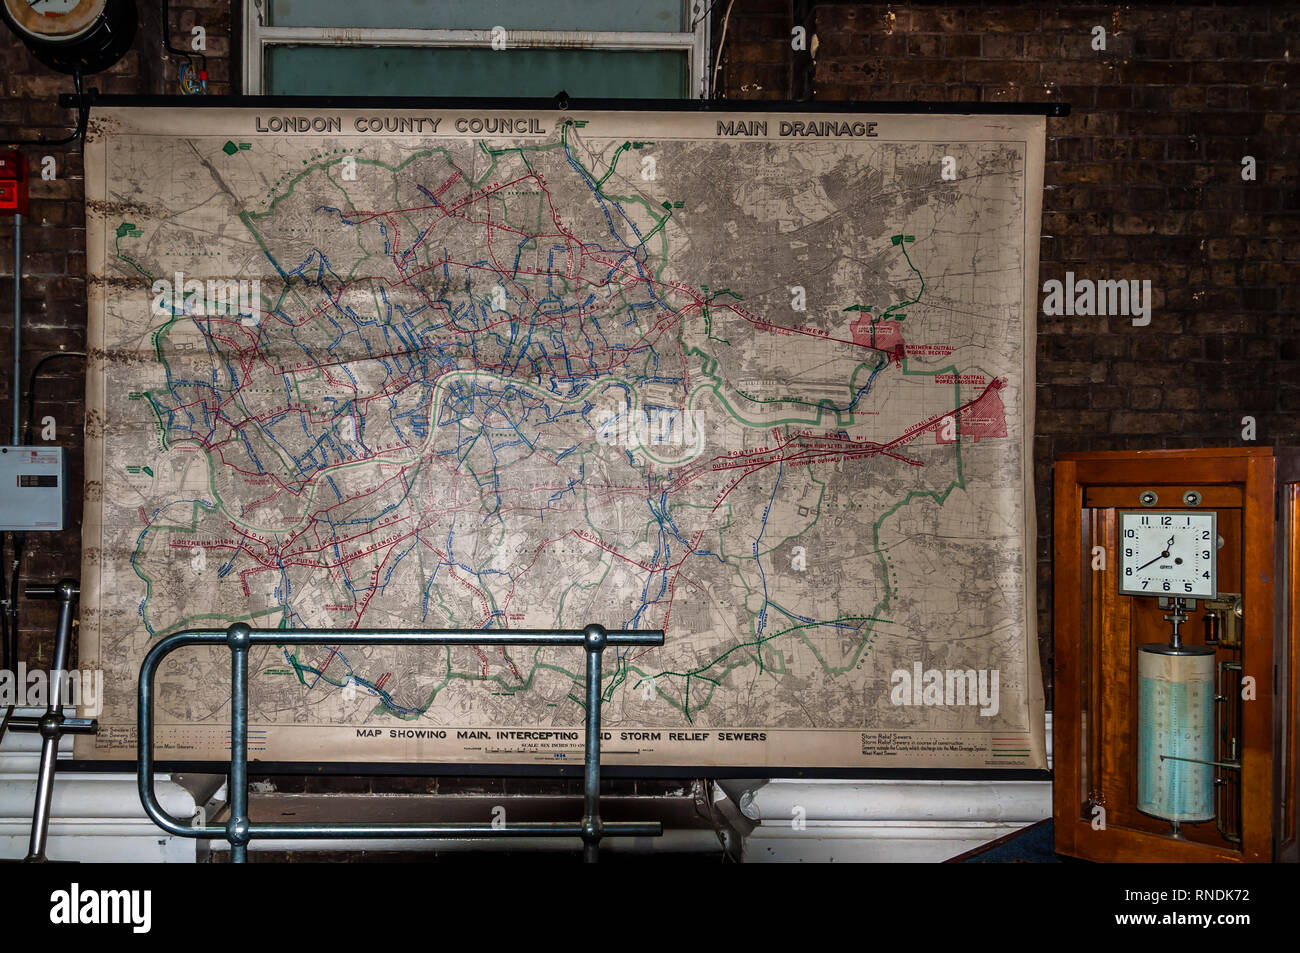 Map storm Relief sewers, Abbey Mills Pumping Station, Stratford, London, England, Uk - Stock Image